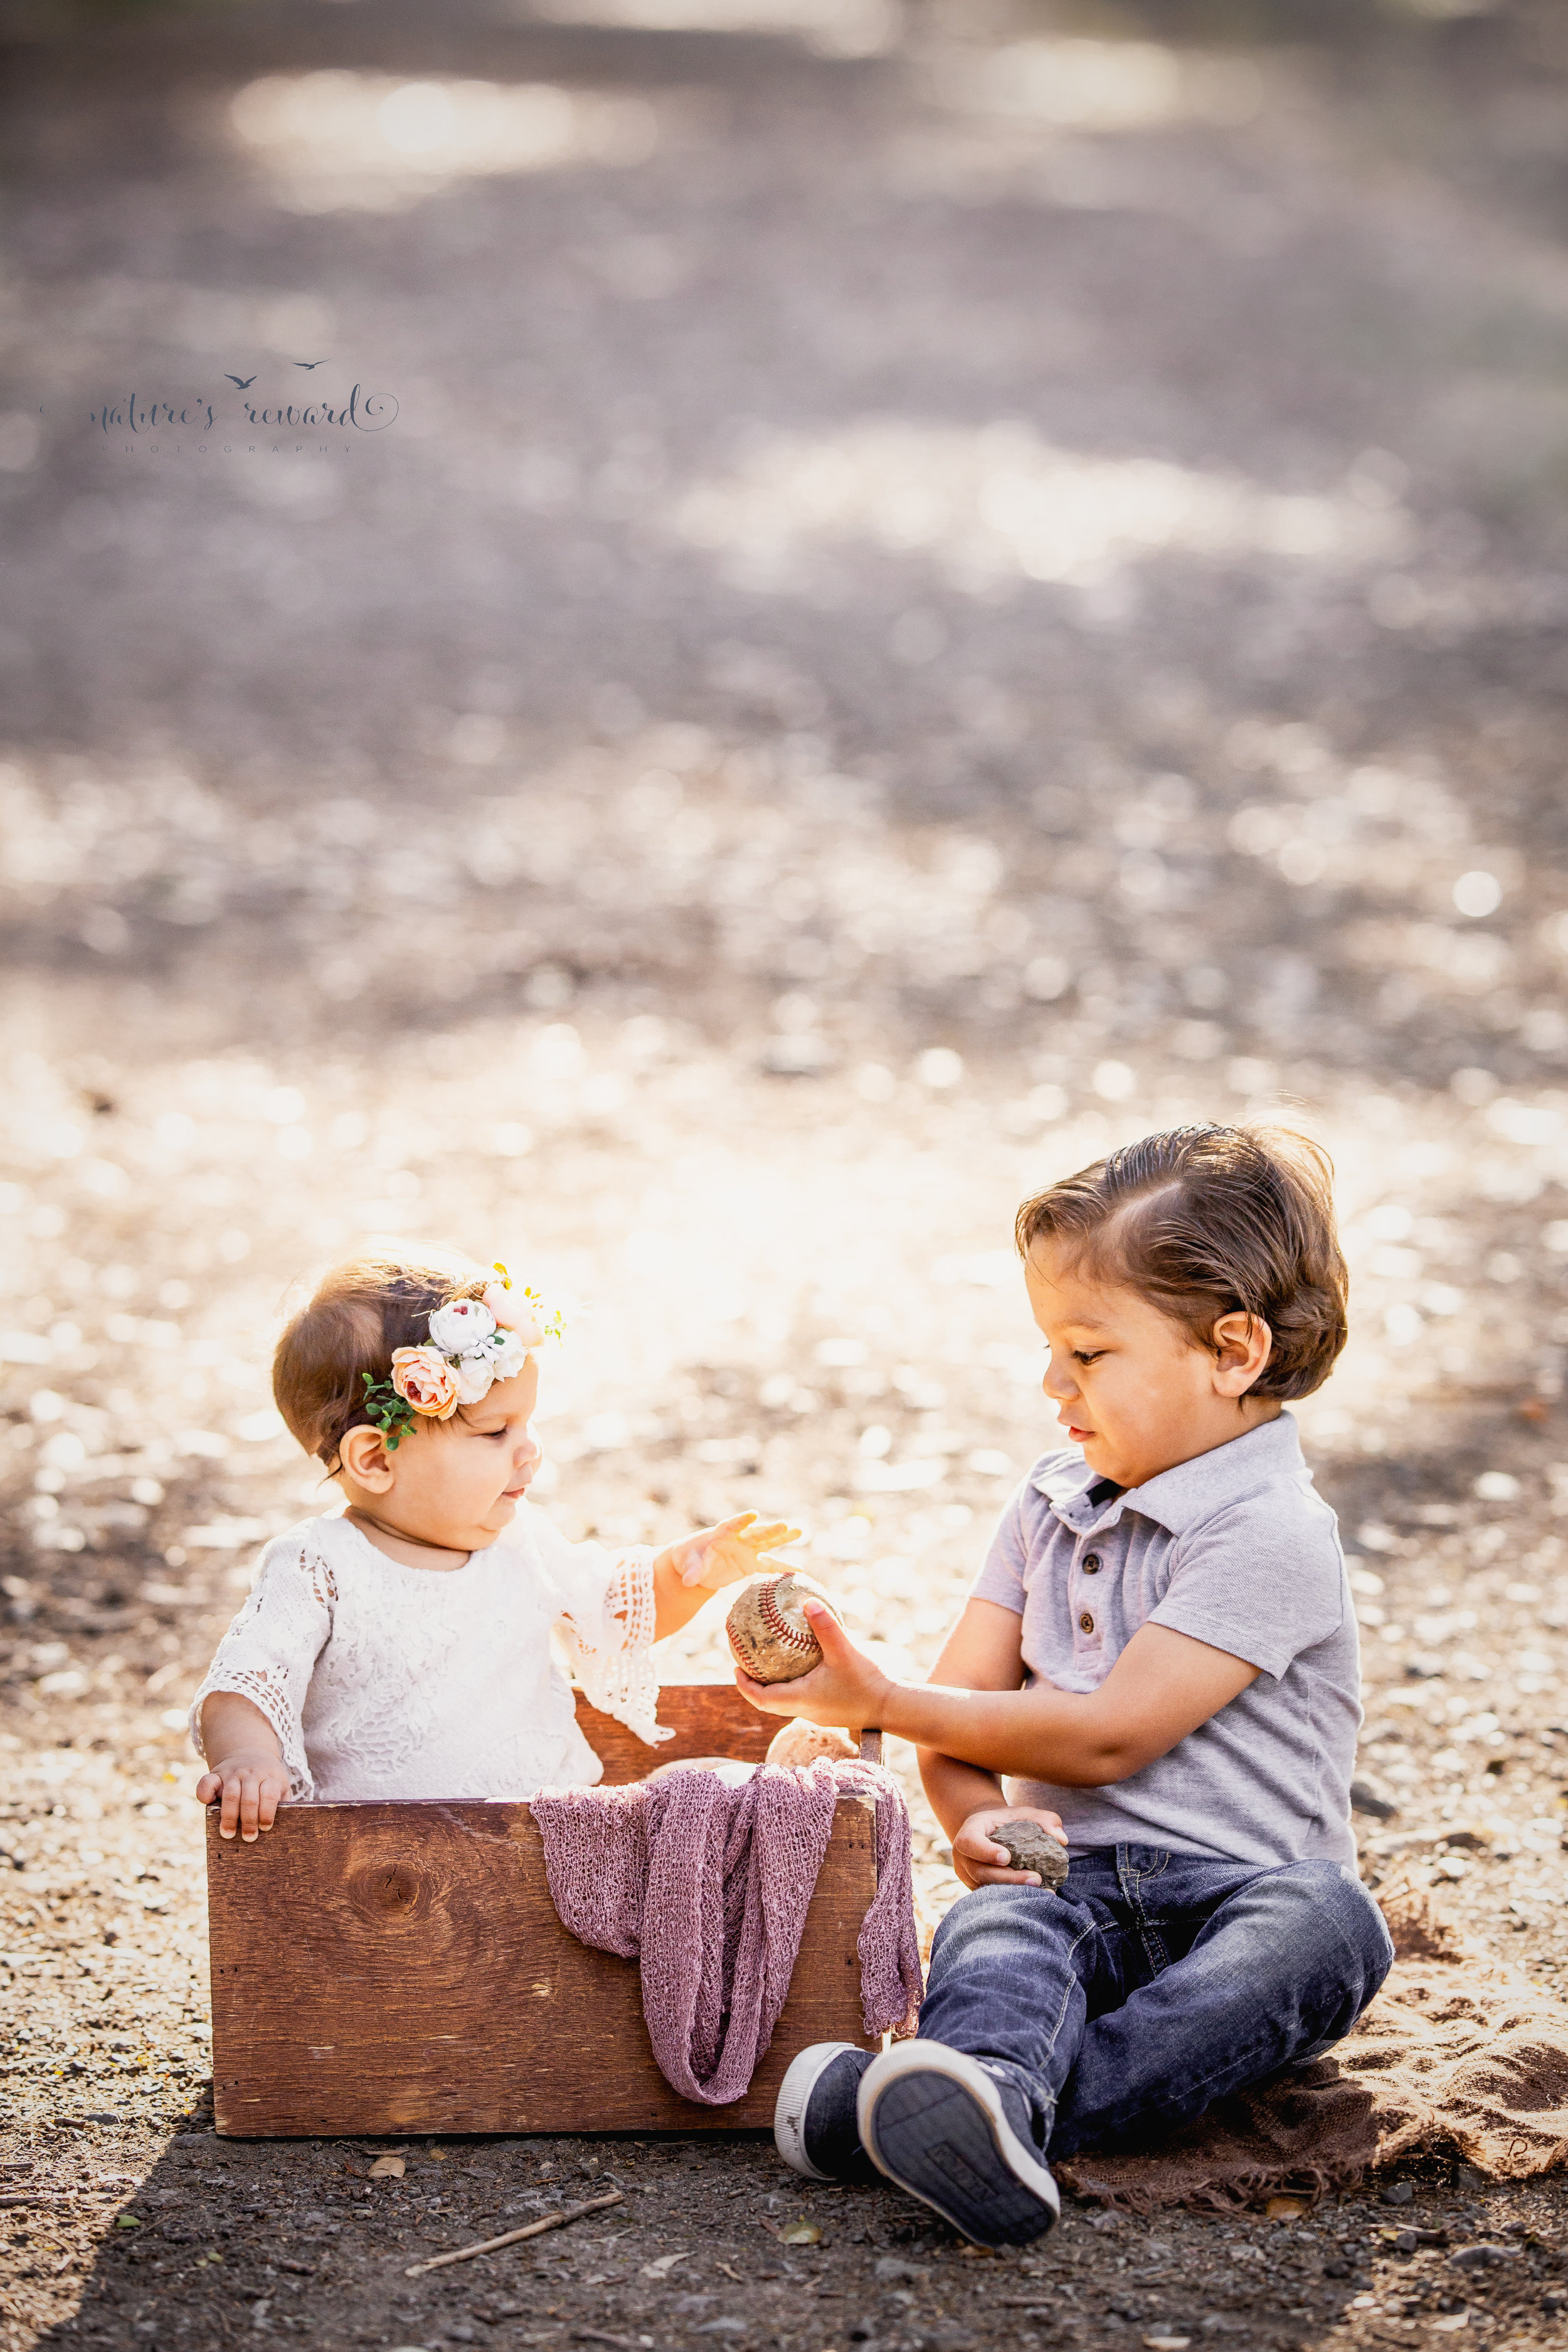 Baby girl sits in a wooden box wearing white lace romper and a flower crown while engaging with her big brother in this portrait by Nature's Reward Photography